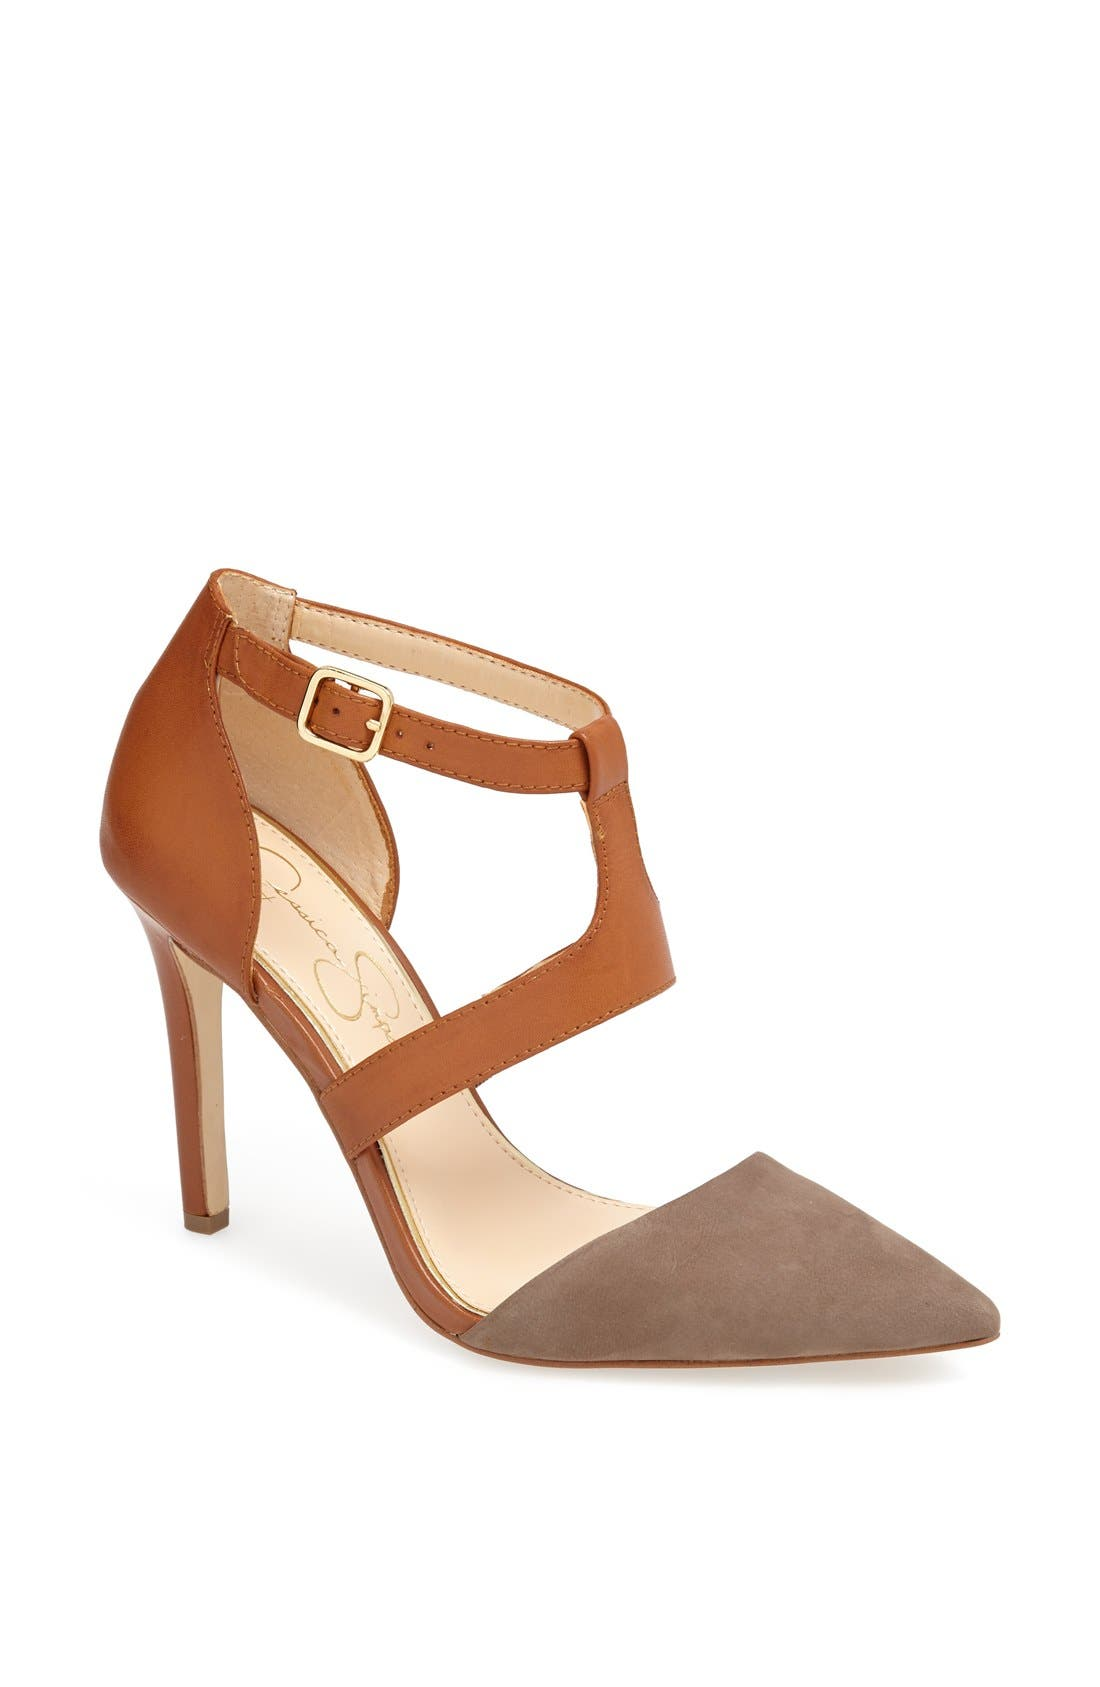 Alternate Image 1 Selected - Jessica Simpson 'Campsonne' Pump